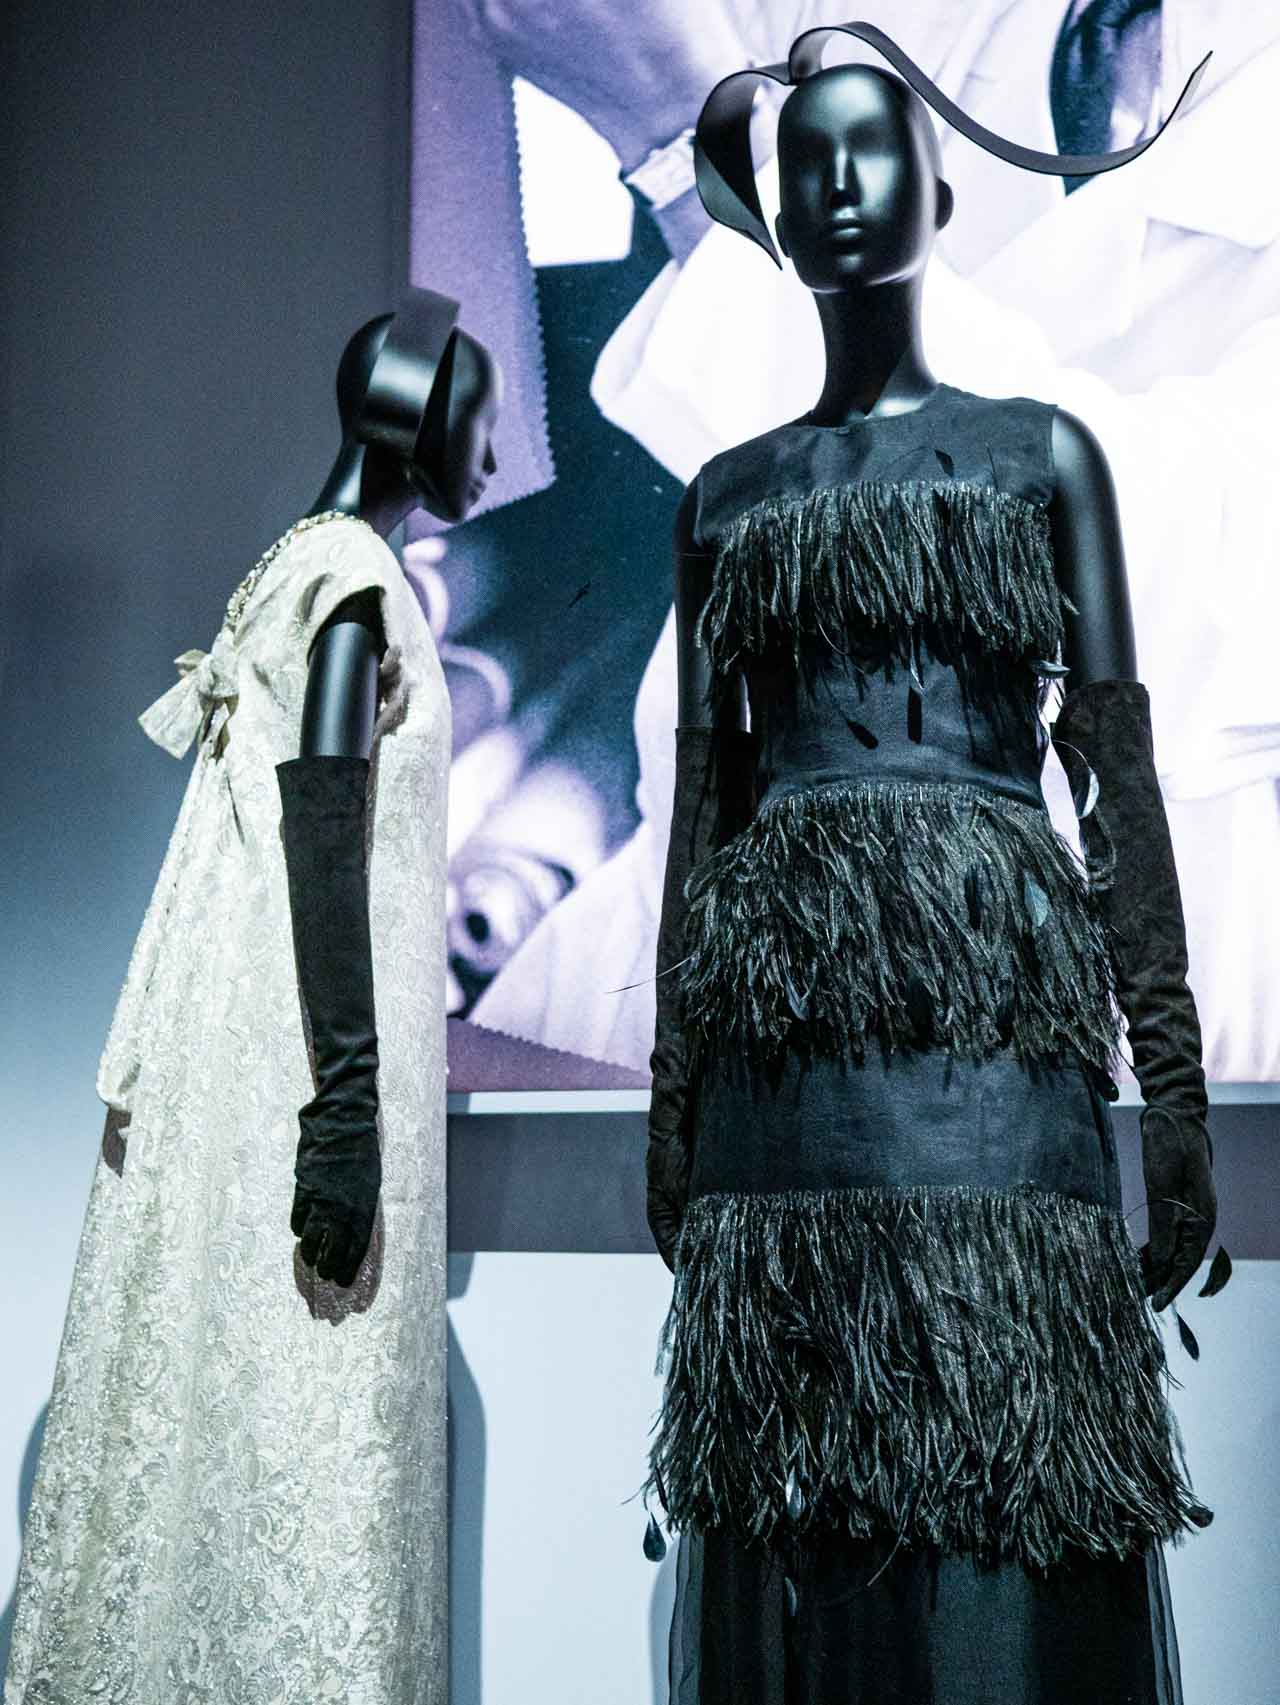 Designs by Marc Bohan for Christian Dior. Taken at the V&A exhibition © The Cutting Class, 2019. Image 2.